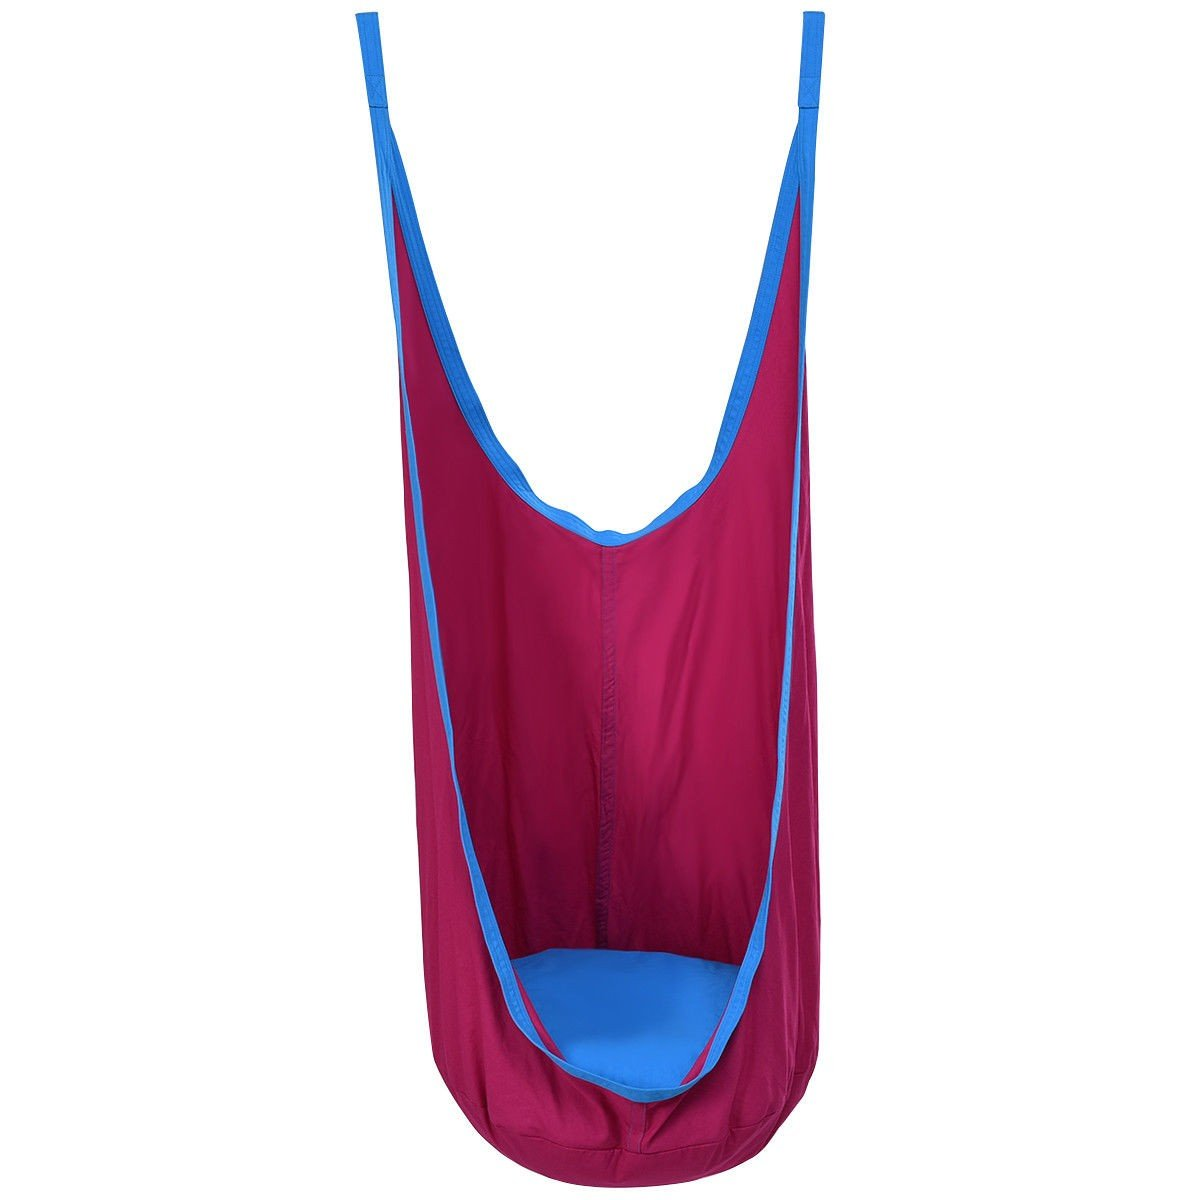 Lianyu Kids Hammock Pod Swing Seat Hanging Chairs, Detachable Cushion, 100% Cotton Canvas for Indoor and Outdoor (Rose) by Lianyu